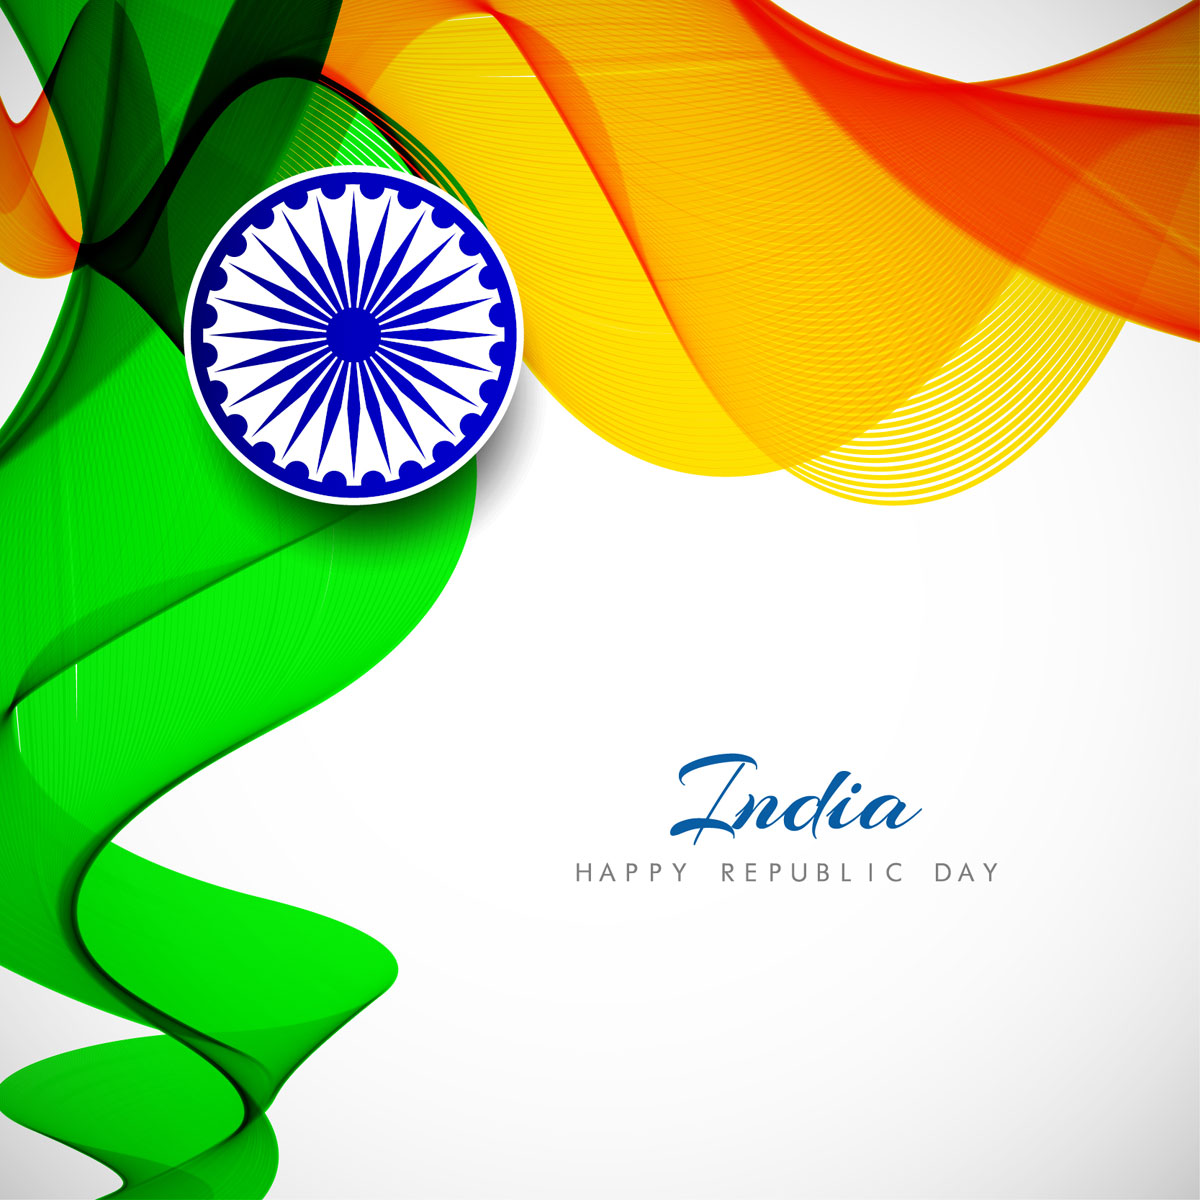 Best Happy Republic Day Wallpapers